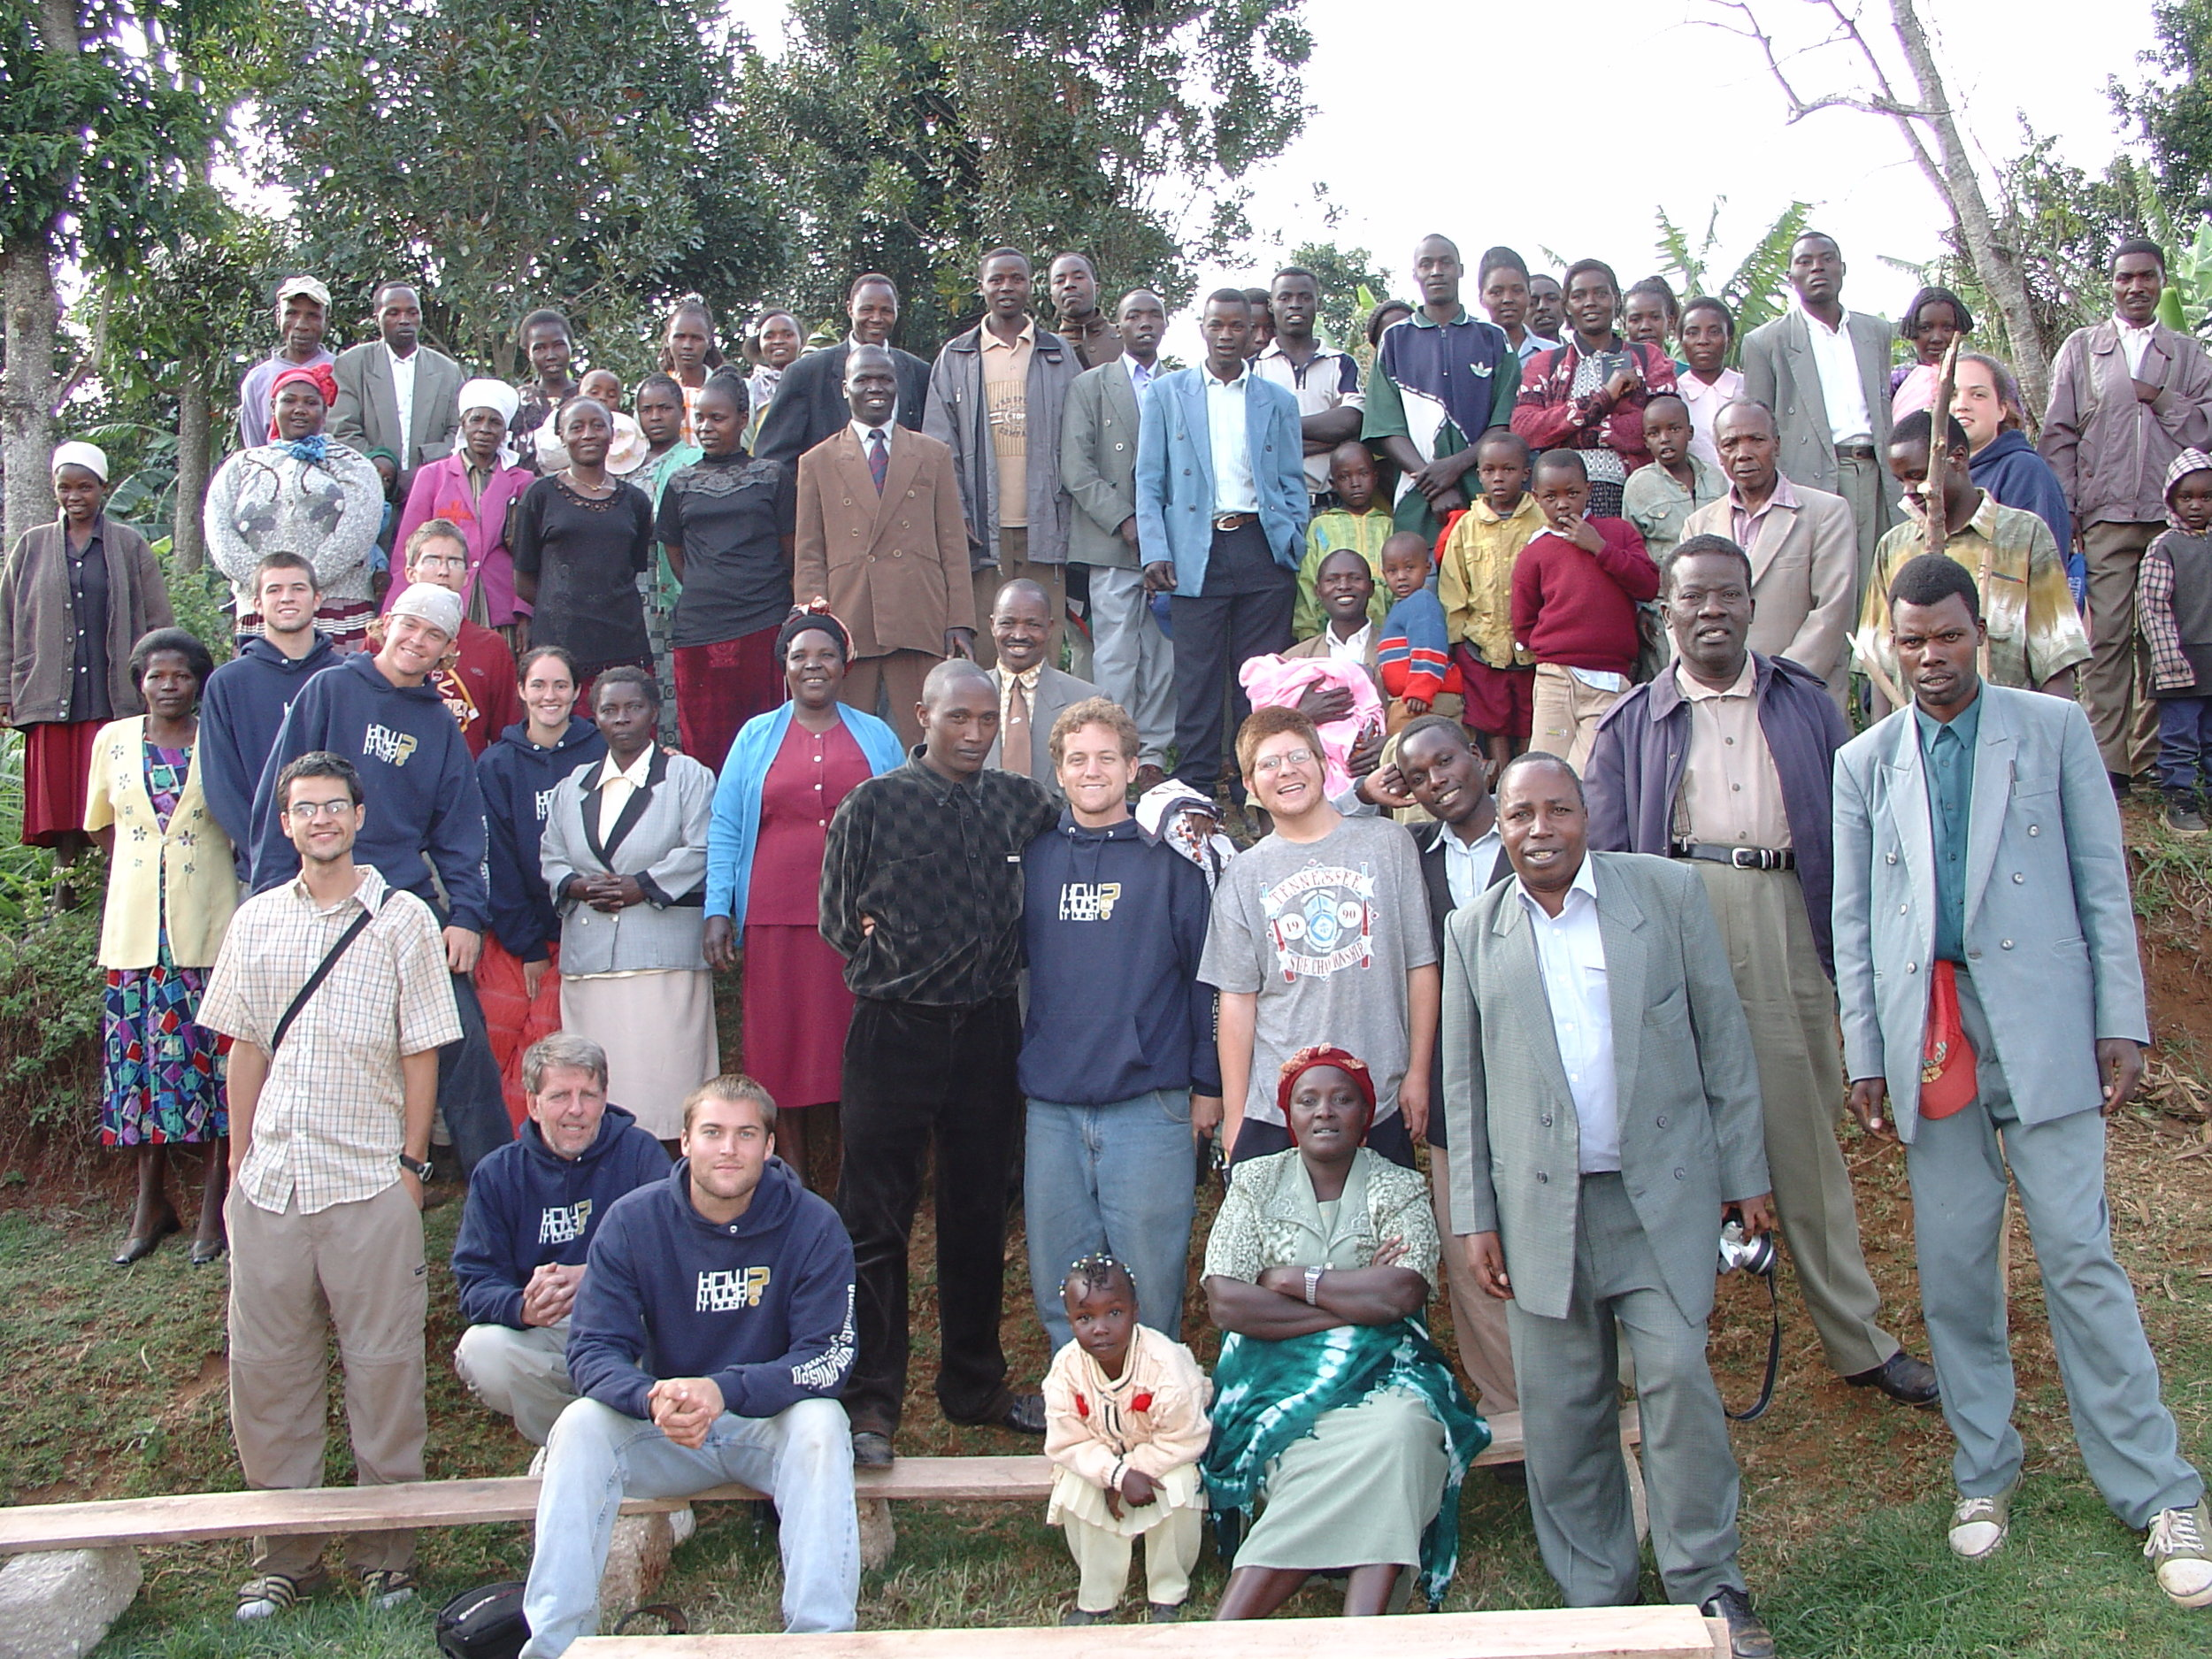 Elias Rukenya is in the front row on the right with the suit, shown here with several of the pastors he teaches and some of our 2003 summer internship team.